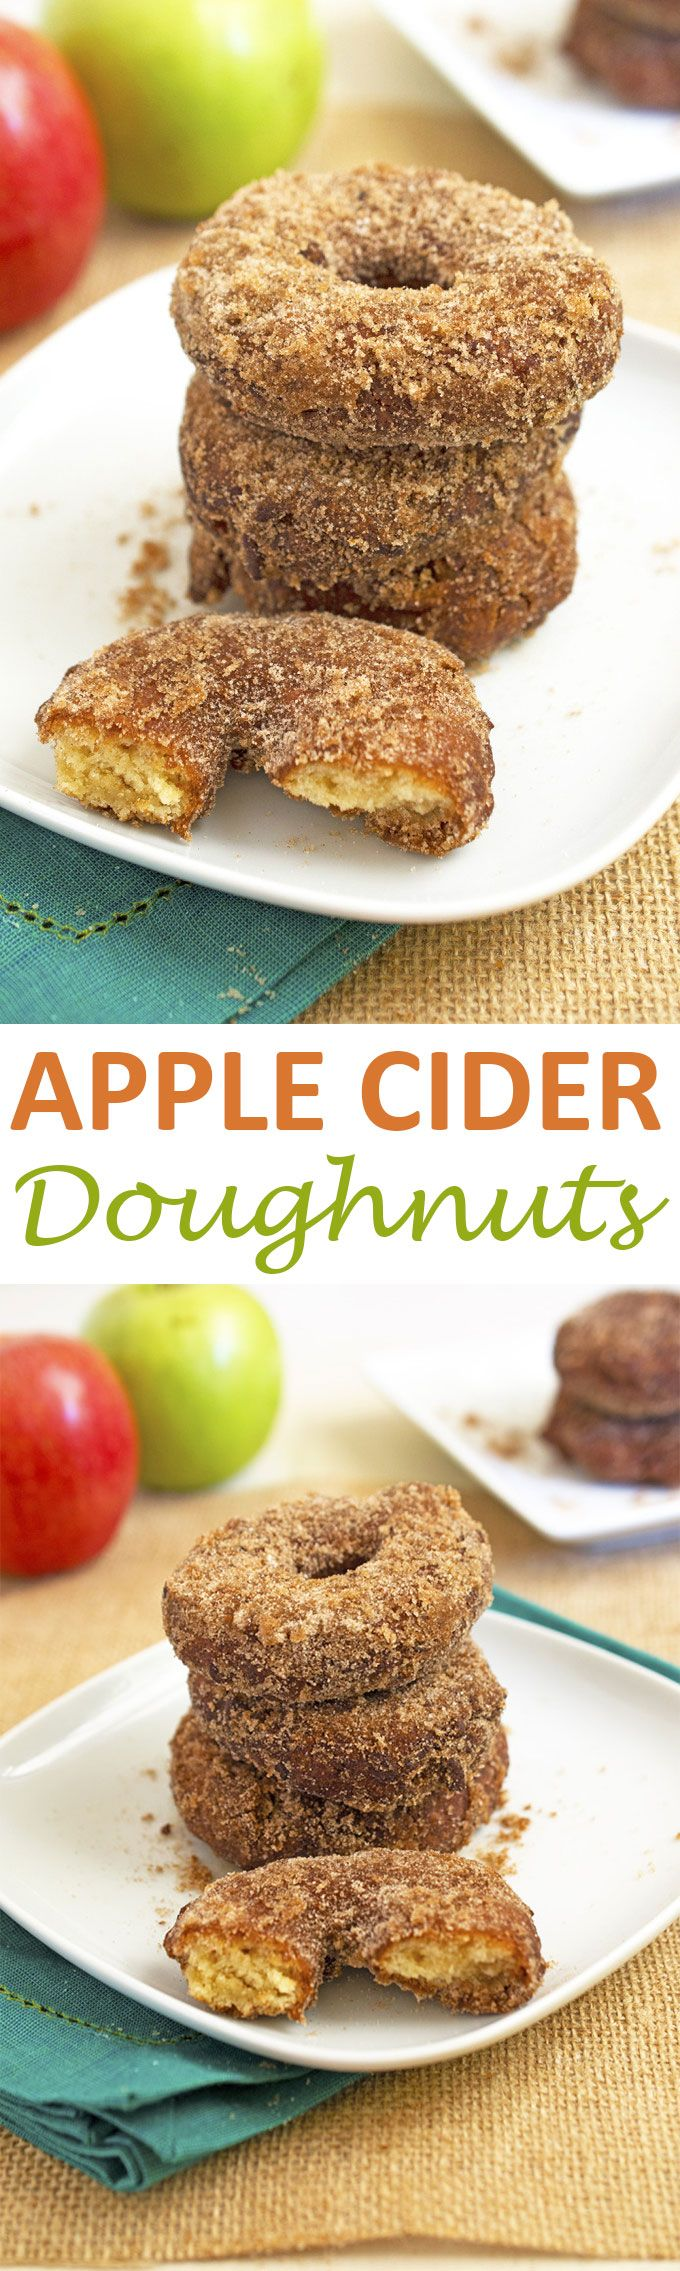 apple cider boozy hot apple cider apple cider apple cider doughnut ...